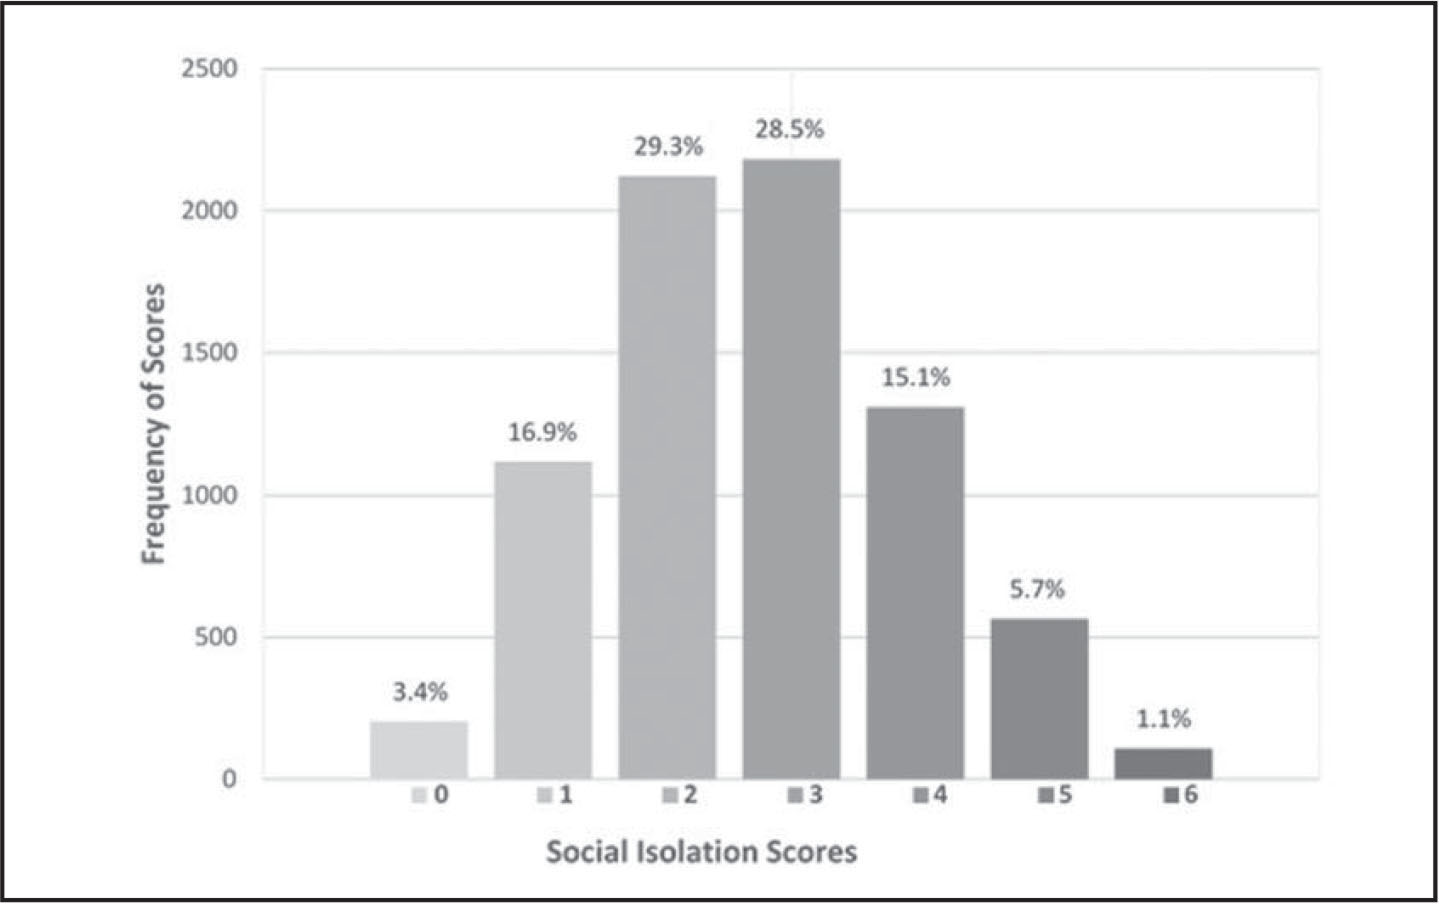 Distribution of social isolation scores among participants in the National Health and Aging Trends Study (N = 7,609) (weighted %, mean = 2.56; standard error = 0.02).